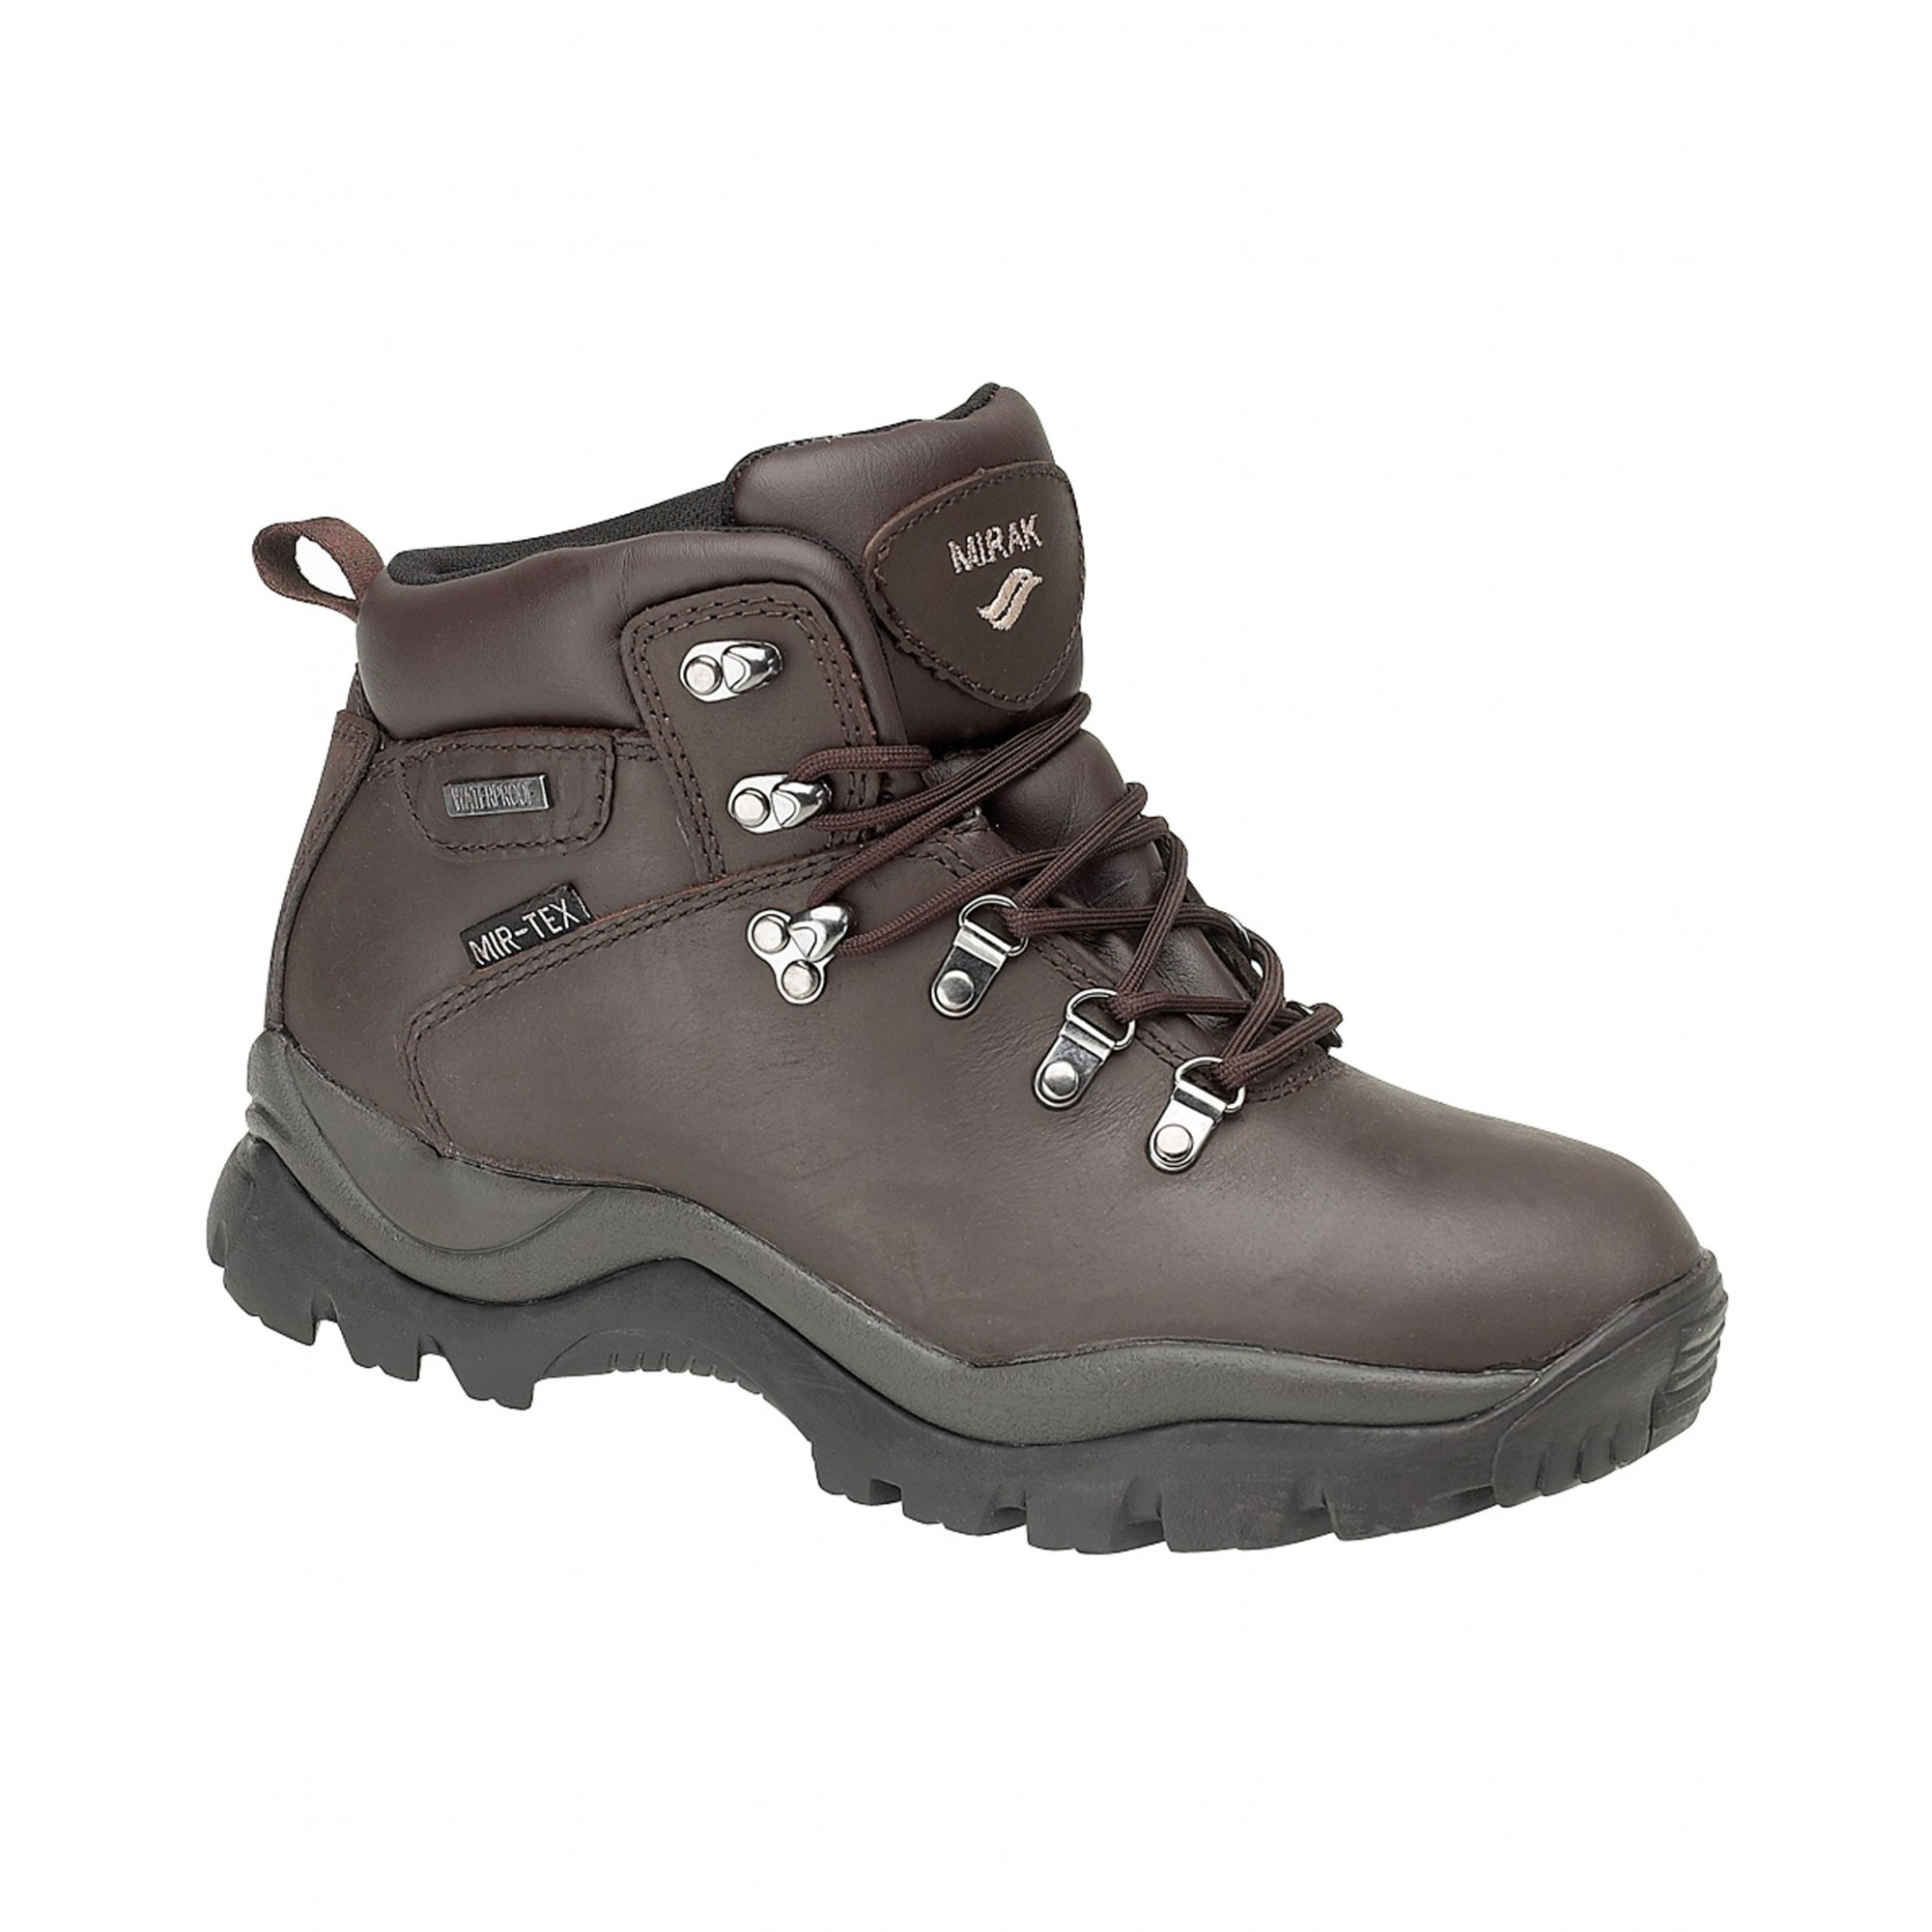 mirak nebrasaka mens leather waterproof hiking walking